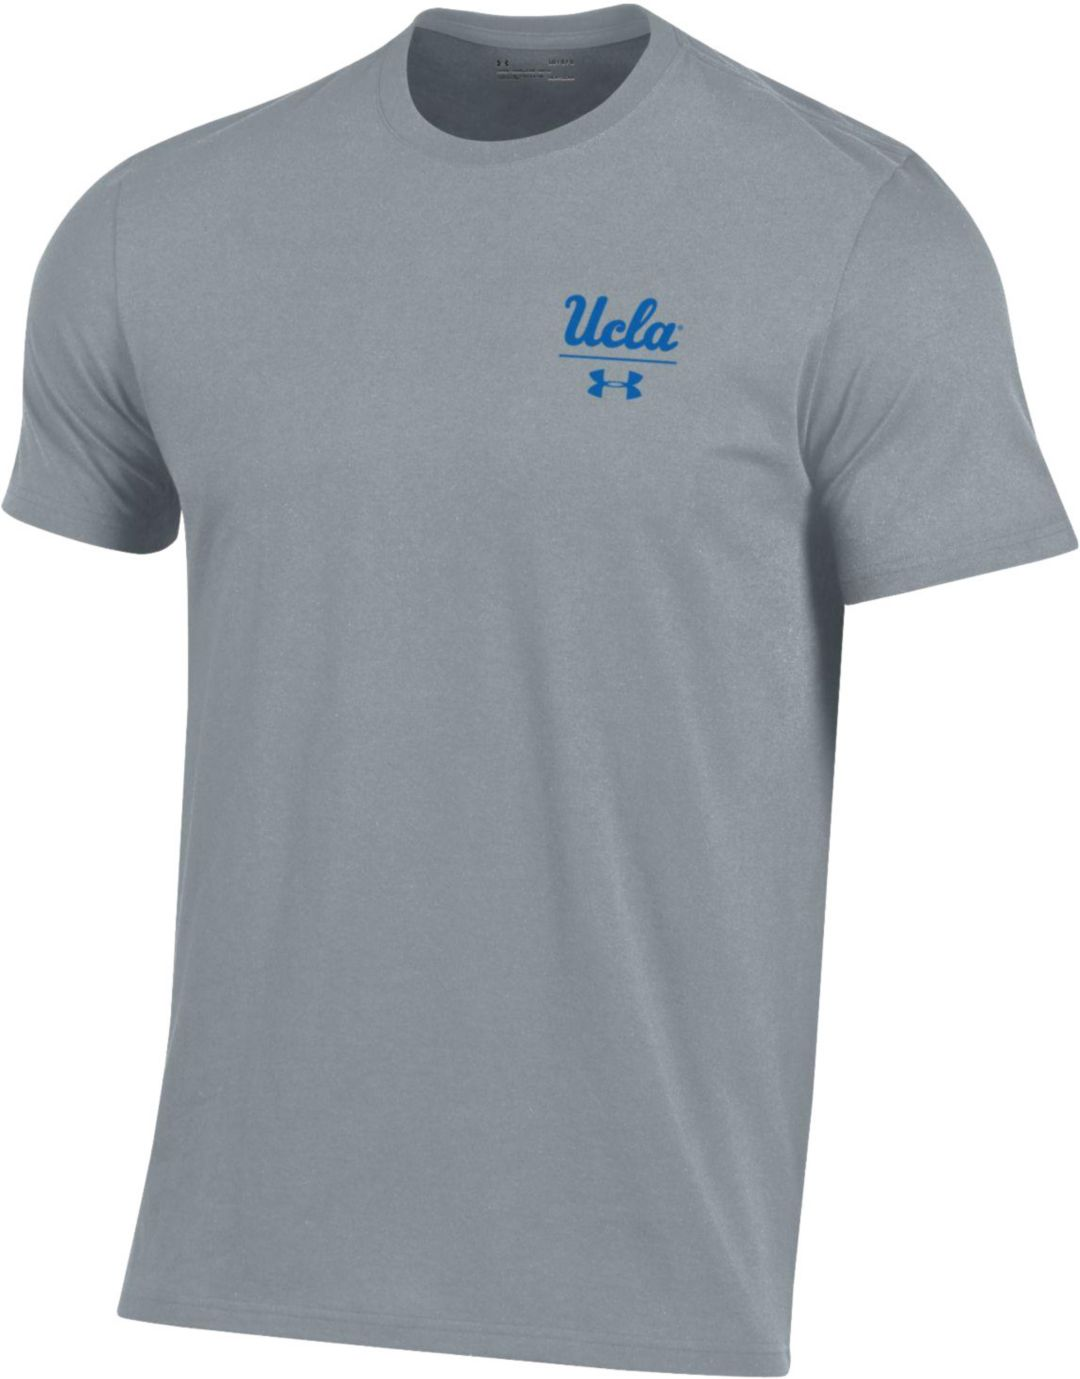 the best attitude 44599 3338b Under Armour Men's UCLA Bruins Grey 'Chip Kelly' Performance Cotton T-Shirt